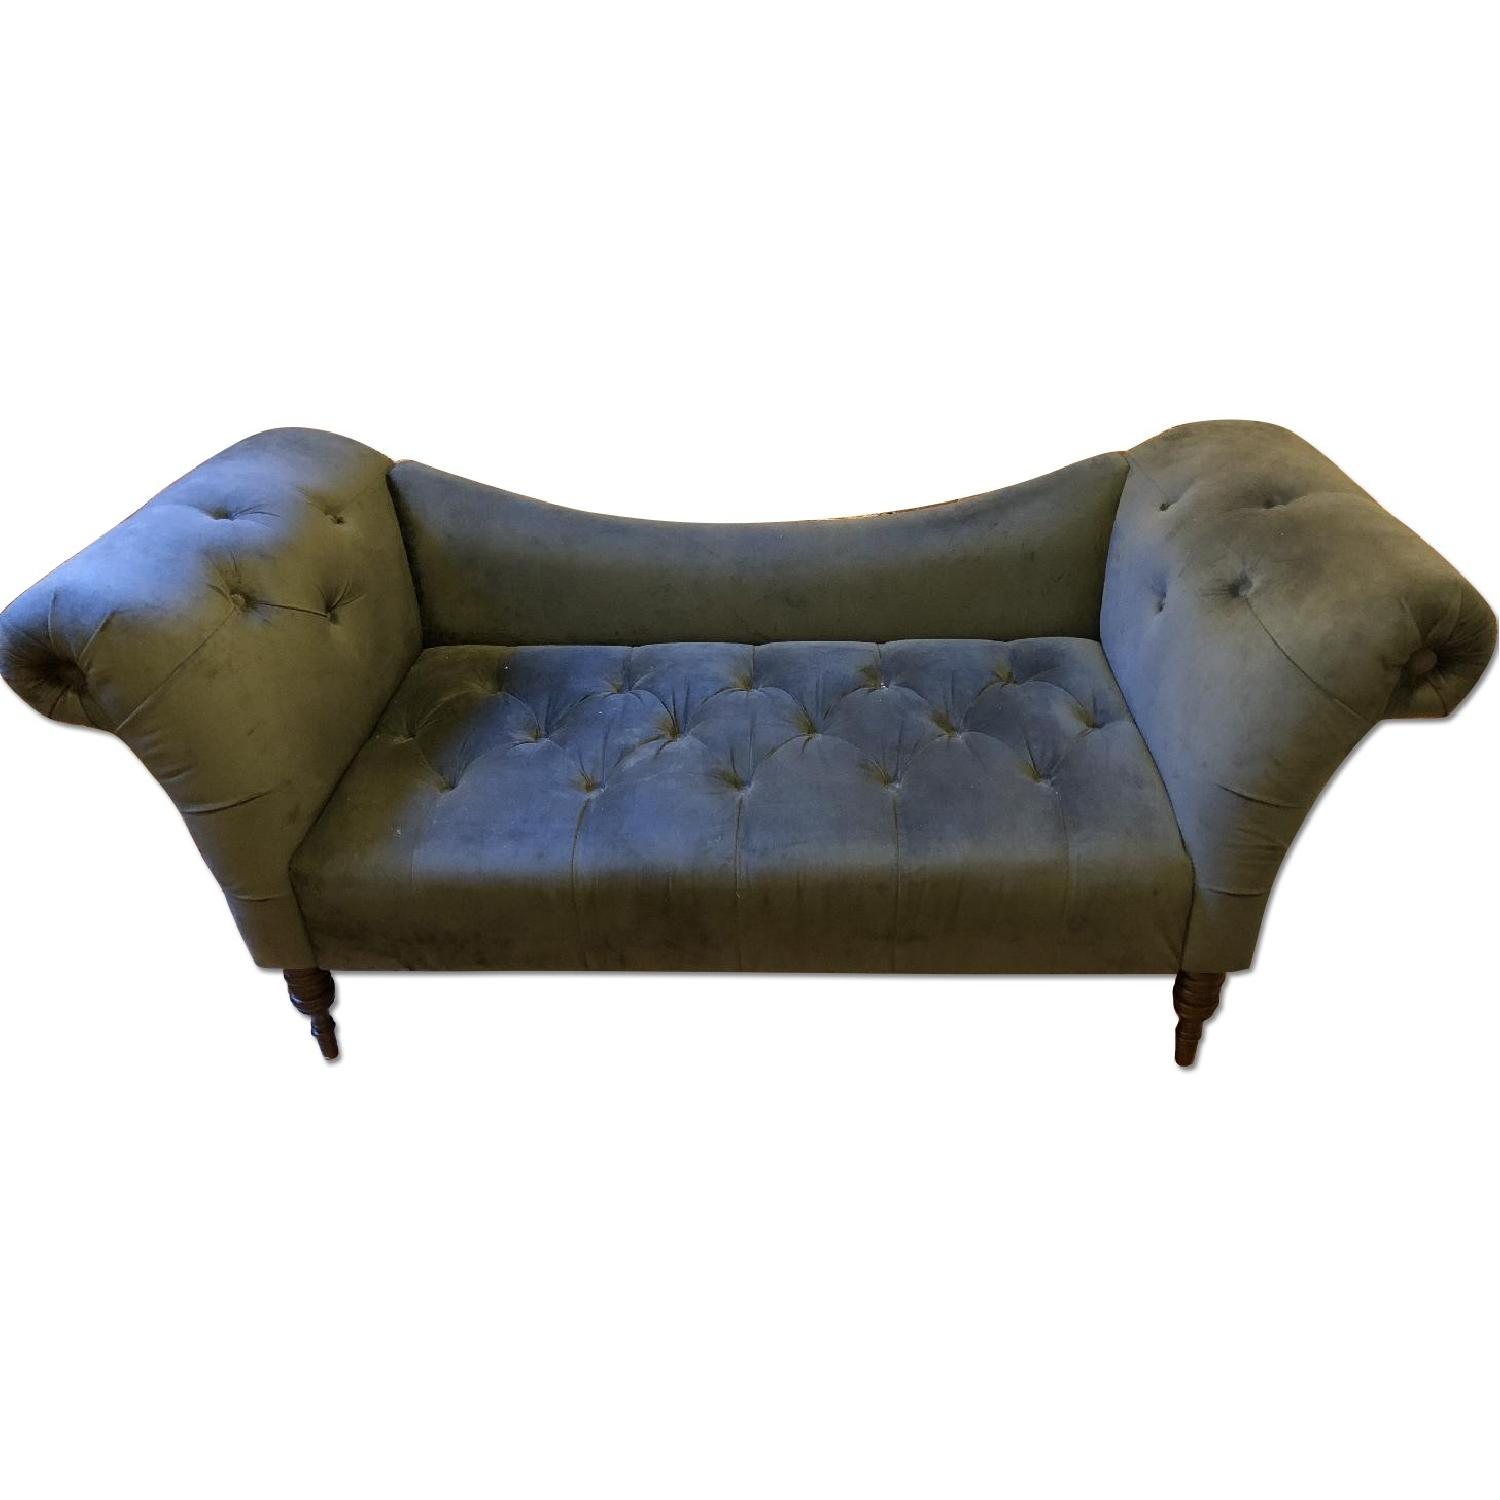 about urban sofa velvet couch popular klikit inspiring tufted top ava ideas of org with sleeper outfitters